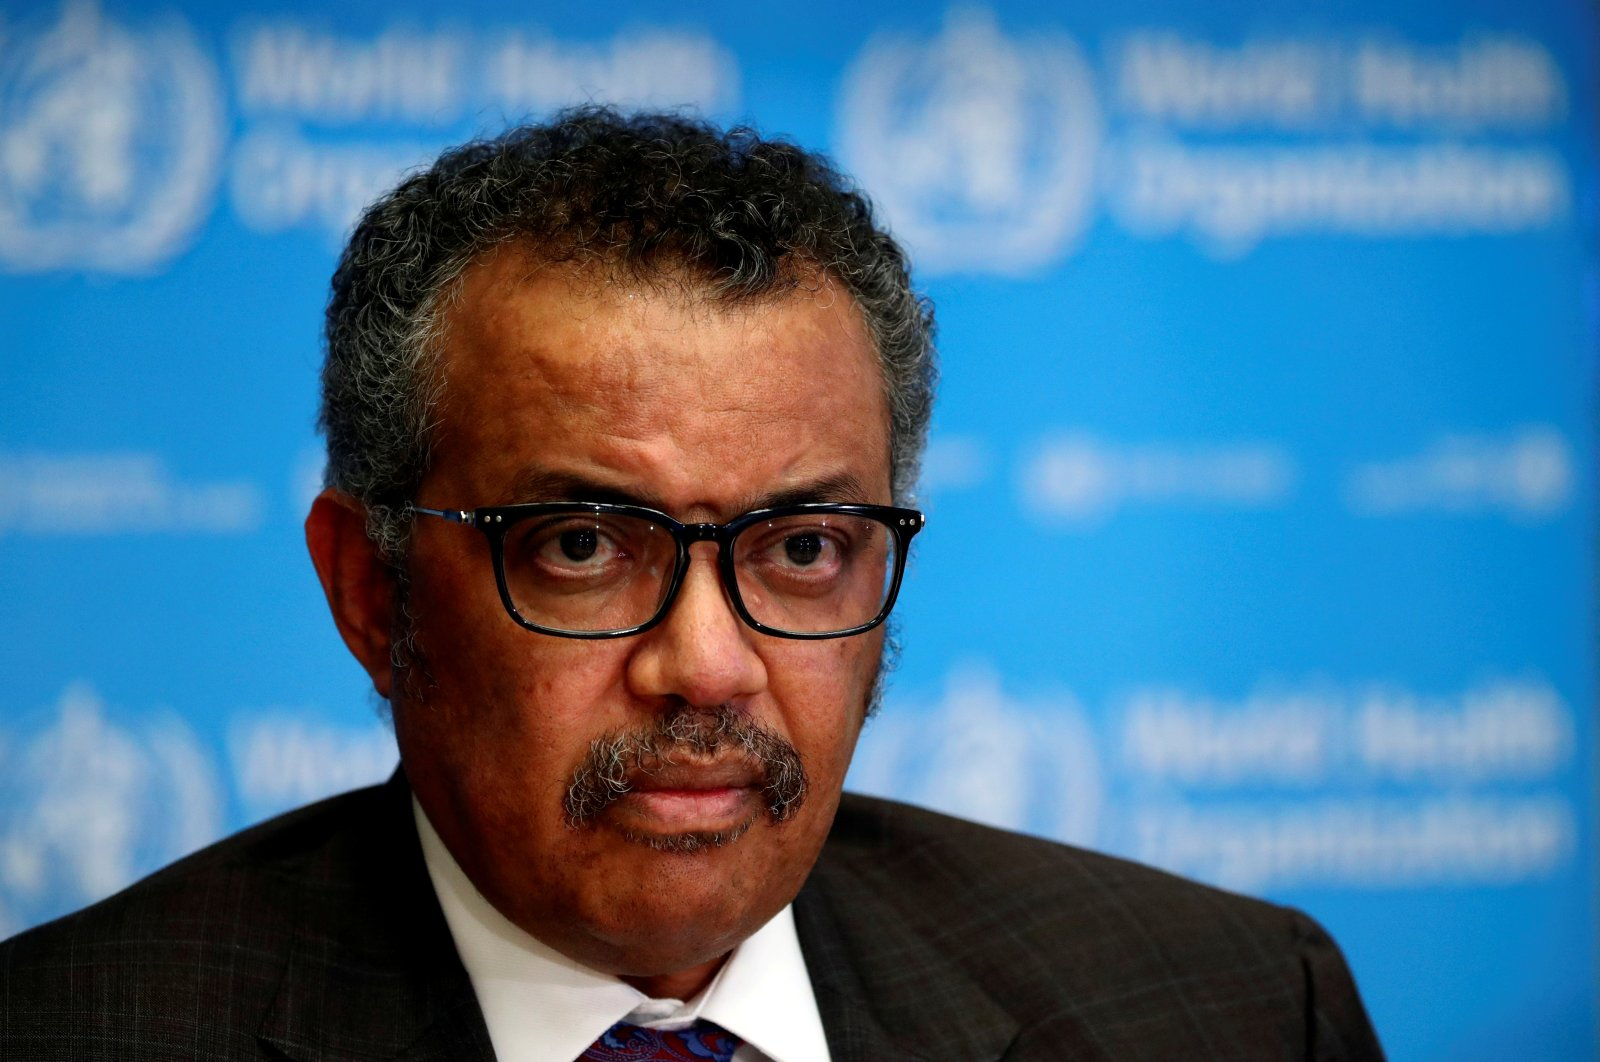 Director-General of the World Health Organization (WHO) Tedros Adhanom Ghebreyesus attends a news conference on the situation of the coronavirus pandemic, Geneva, Switzerland, Feb. 28, 2020. (Reuters Photo)